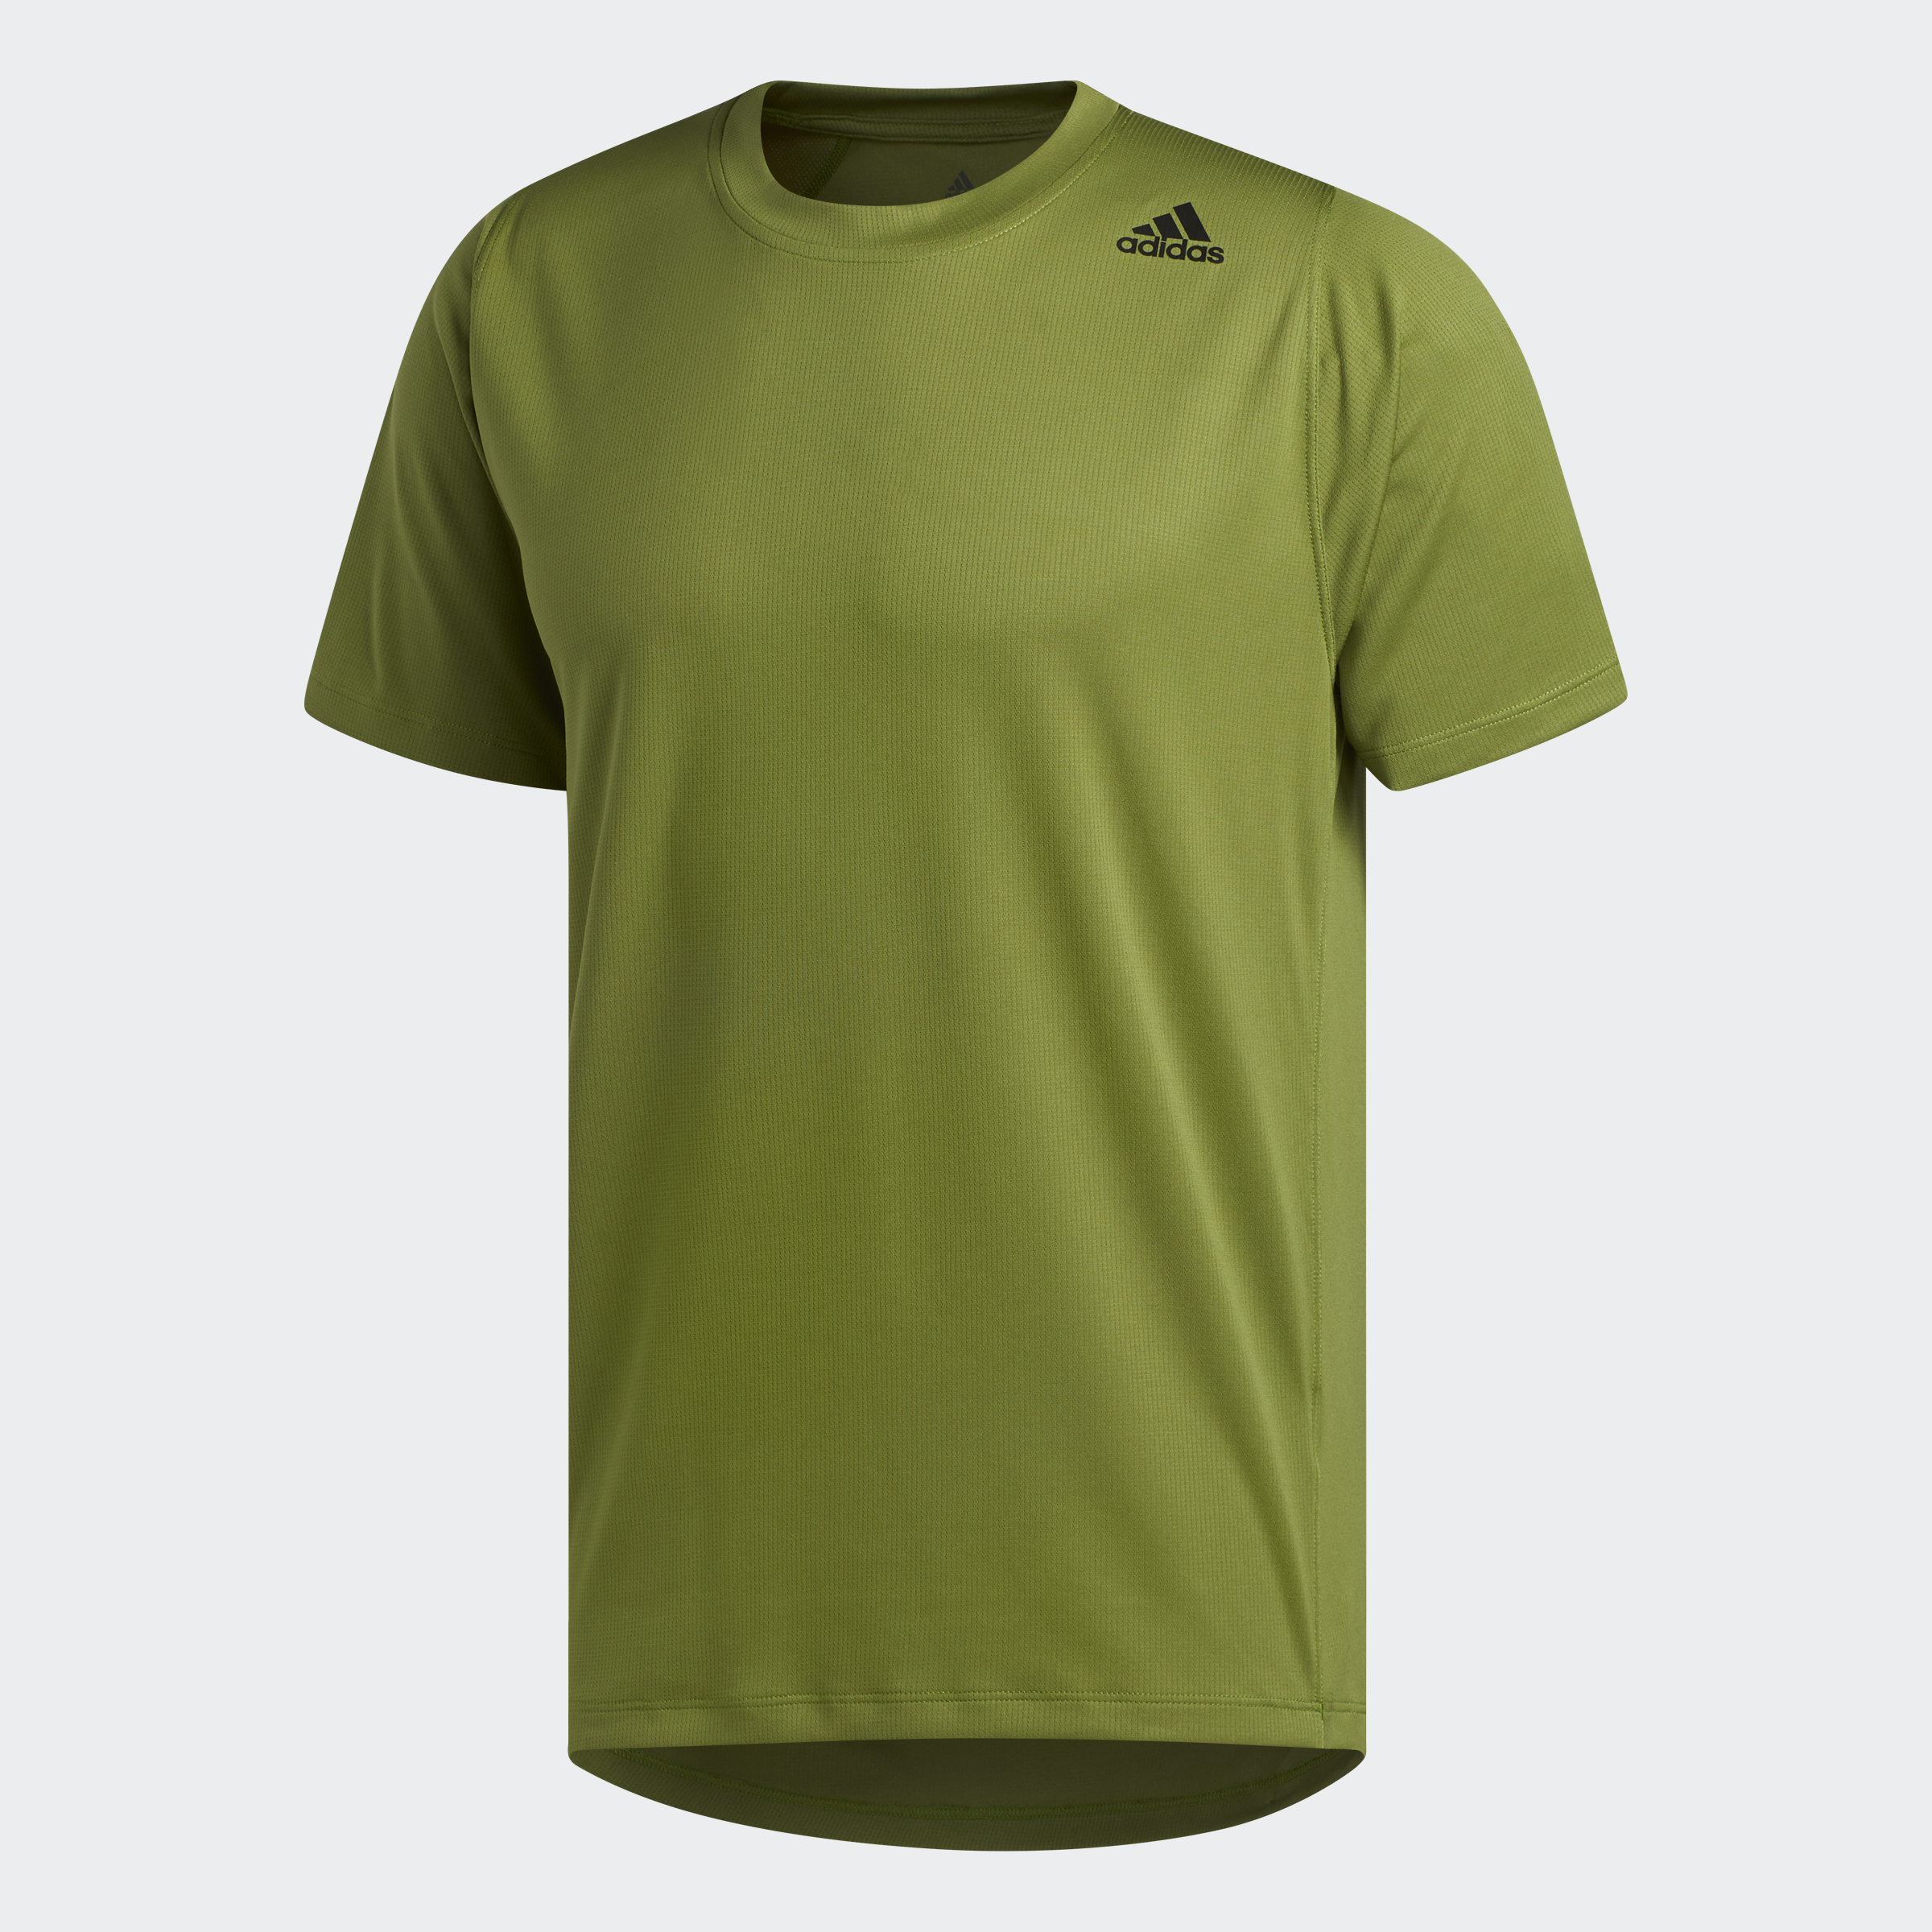 adidas-FreeLift-Sport-Fitted-3-Stripes-Tee-Men-039-s-Shirts miniature 60